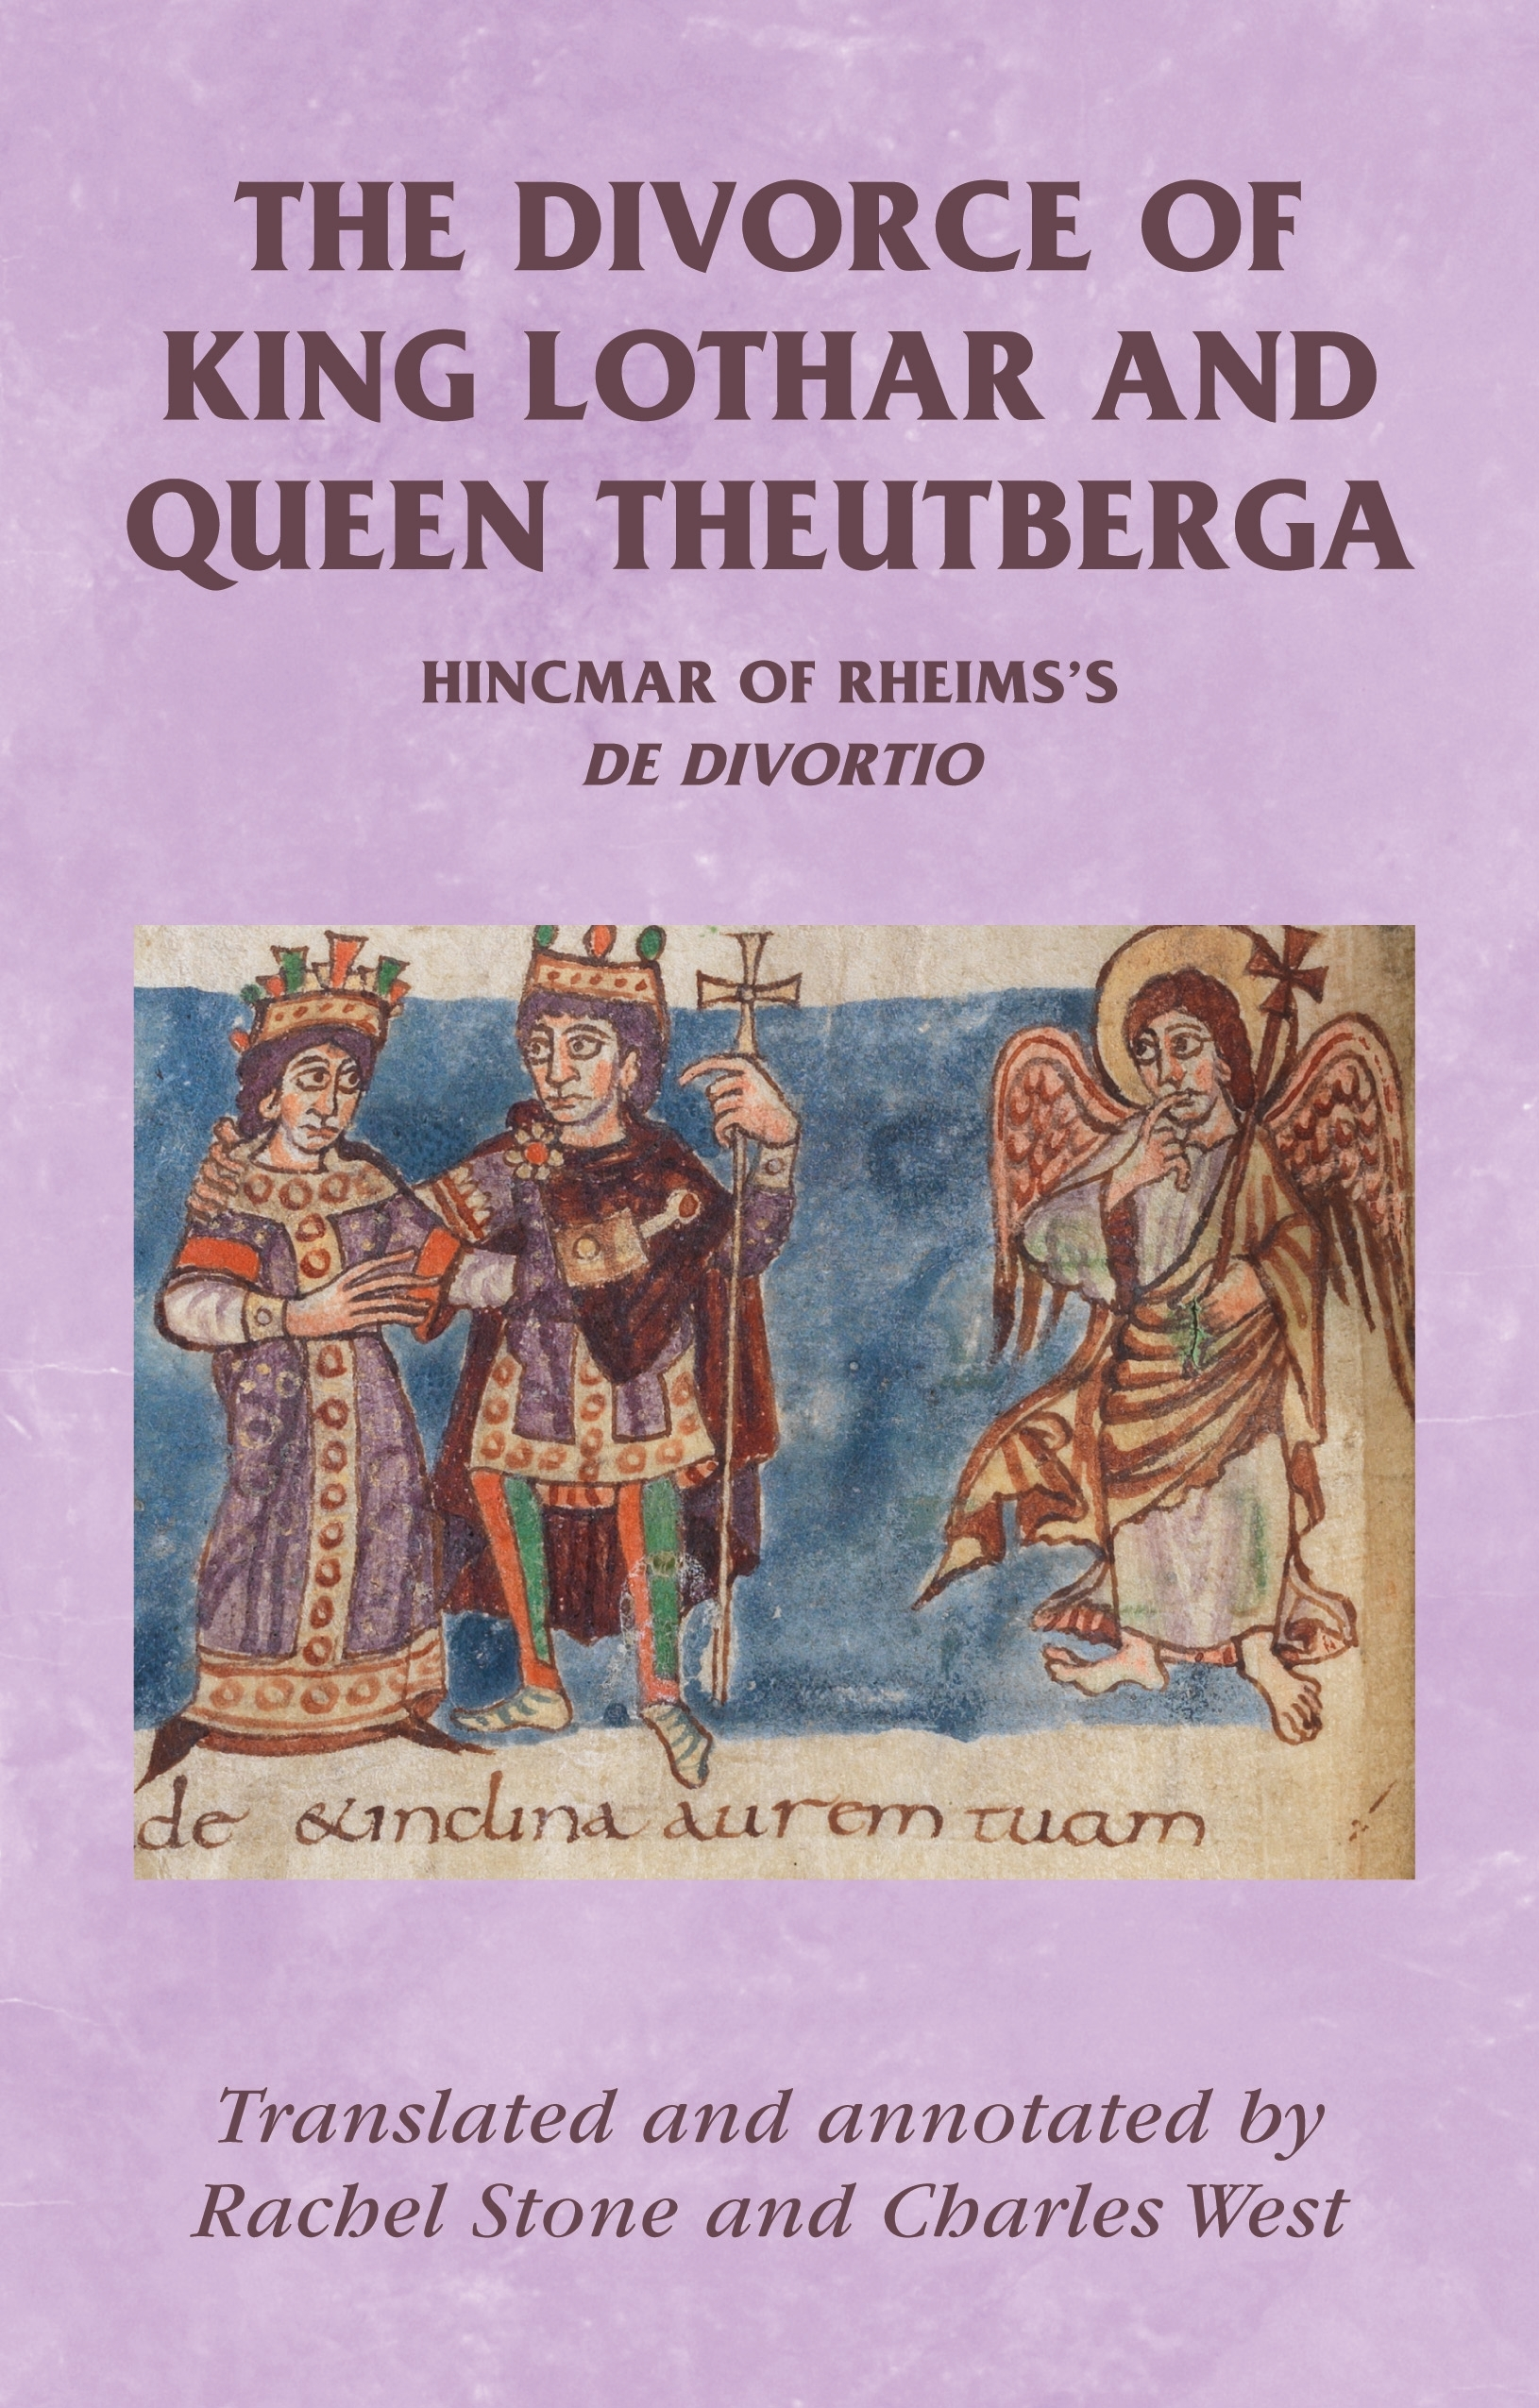 UNDER THE ANGEL'S GAZE: THE DIVORCE OF KING LOTHAR AND QUEEN THEUTBERGA